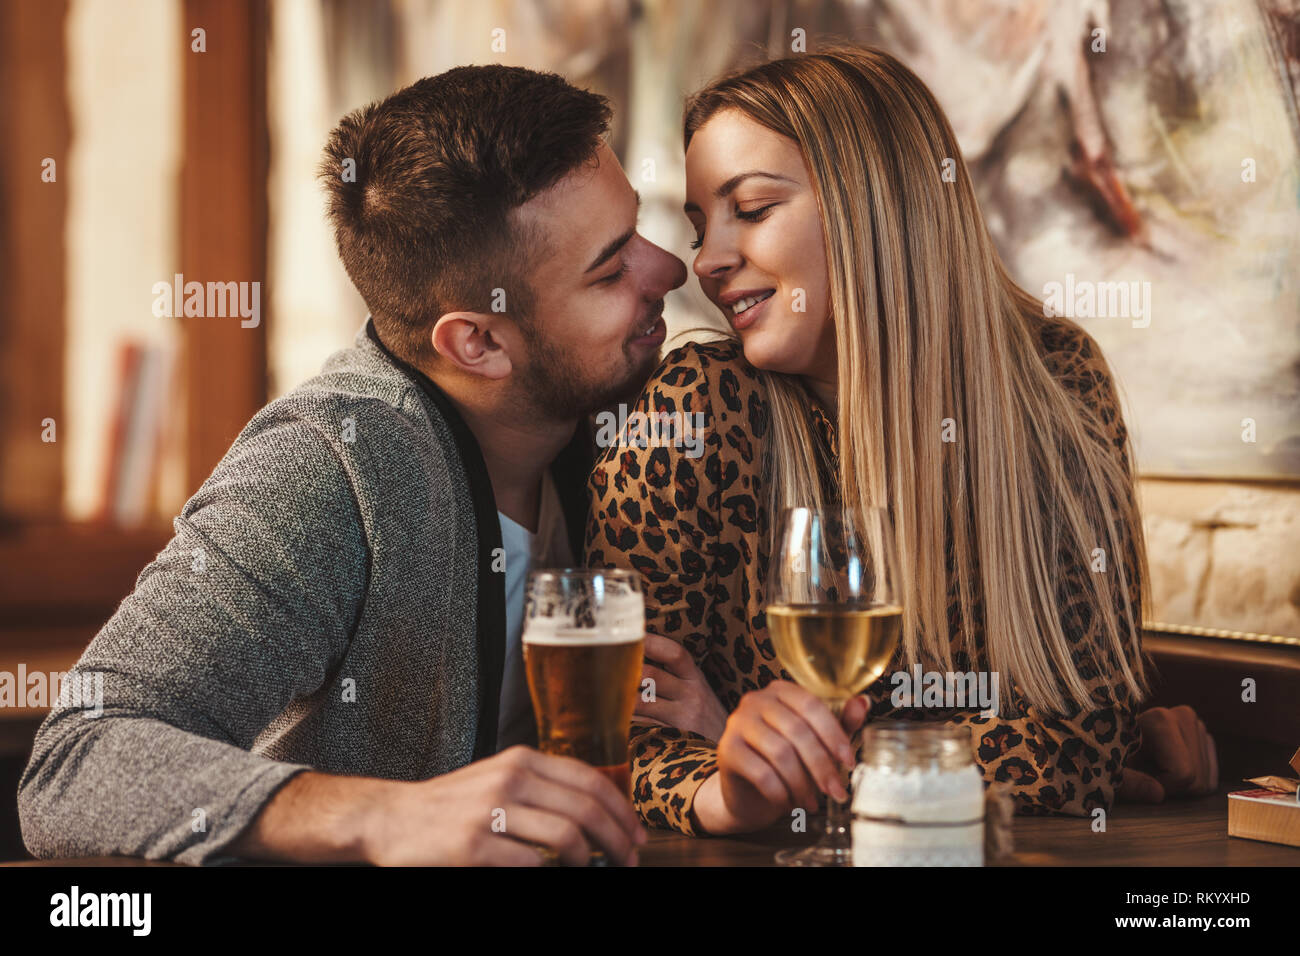 Romantic loving couple drinking beer, having a date in the cafe. - Stock Image